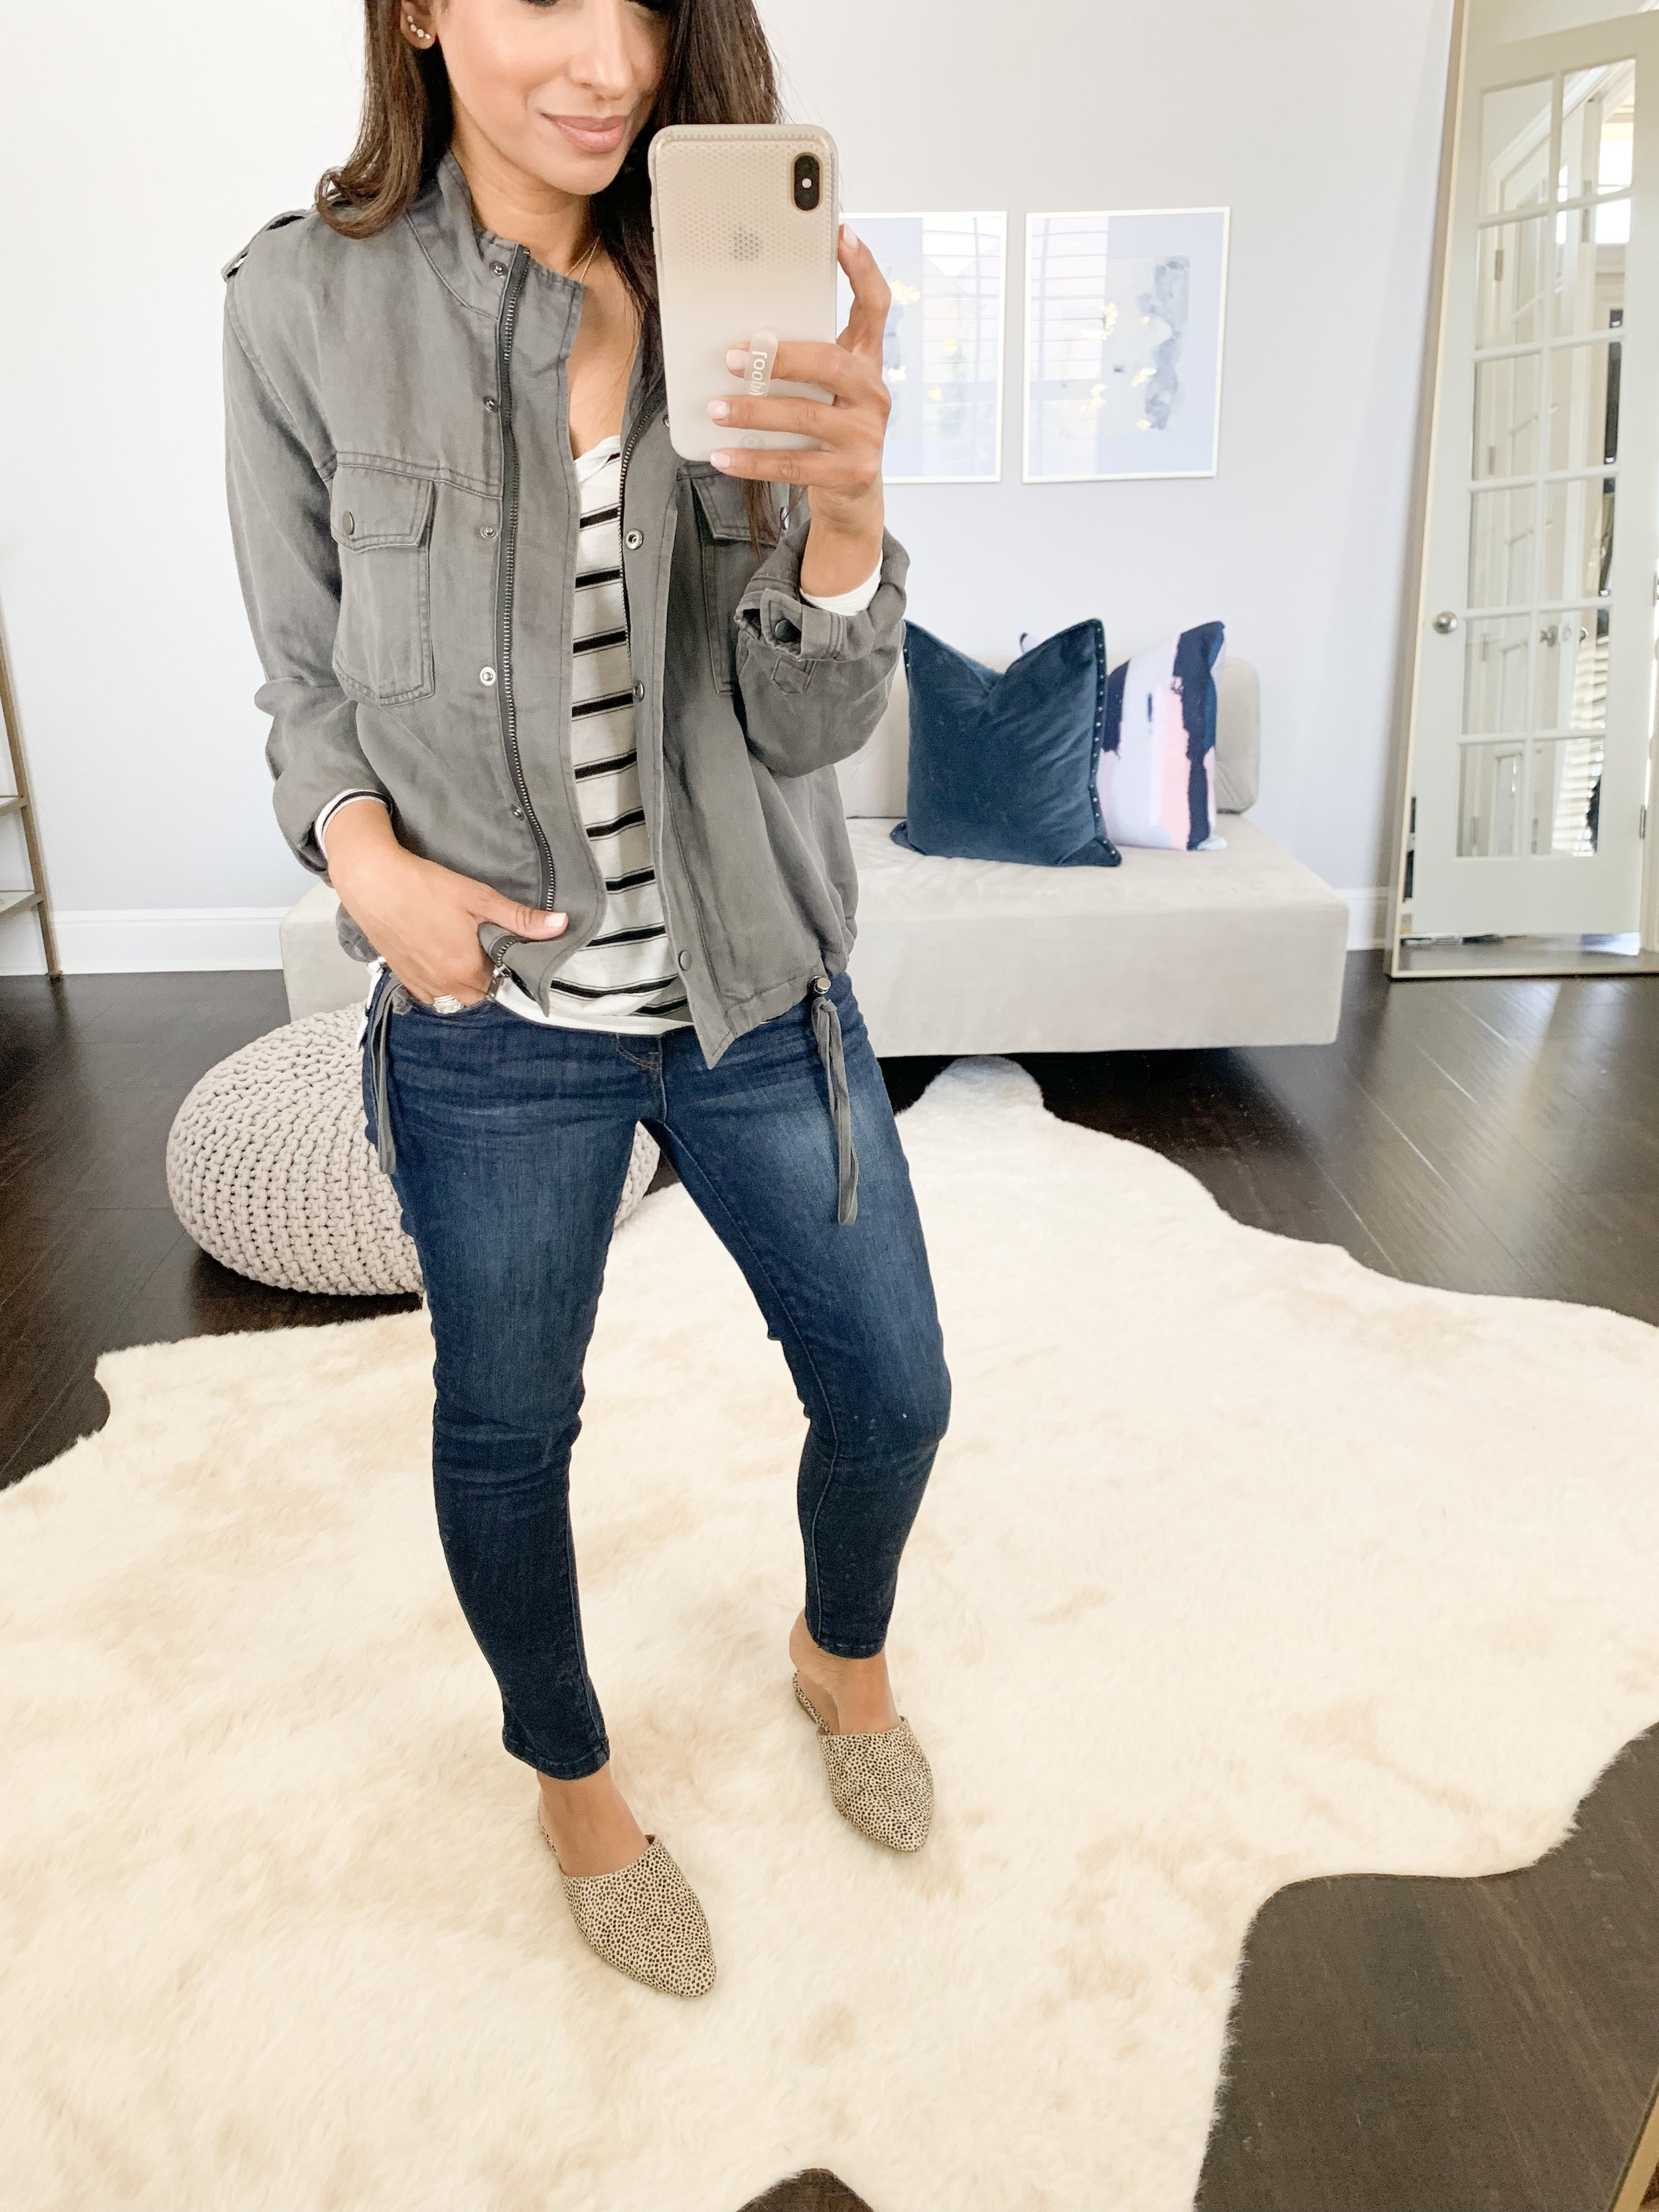 Utility Jacket (XS) // Jeans (TTS) // Mules (TTS but size up if between!)